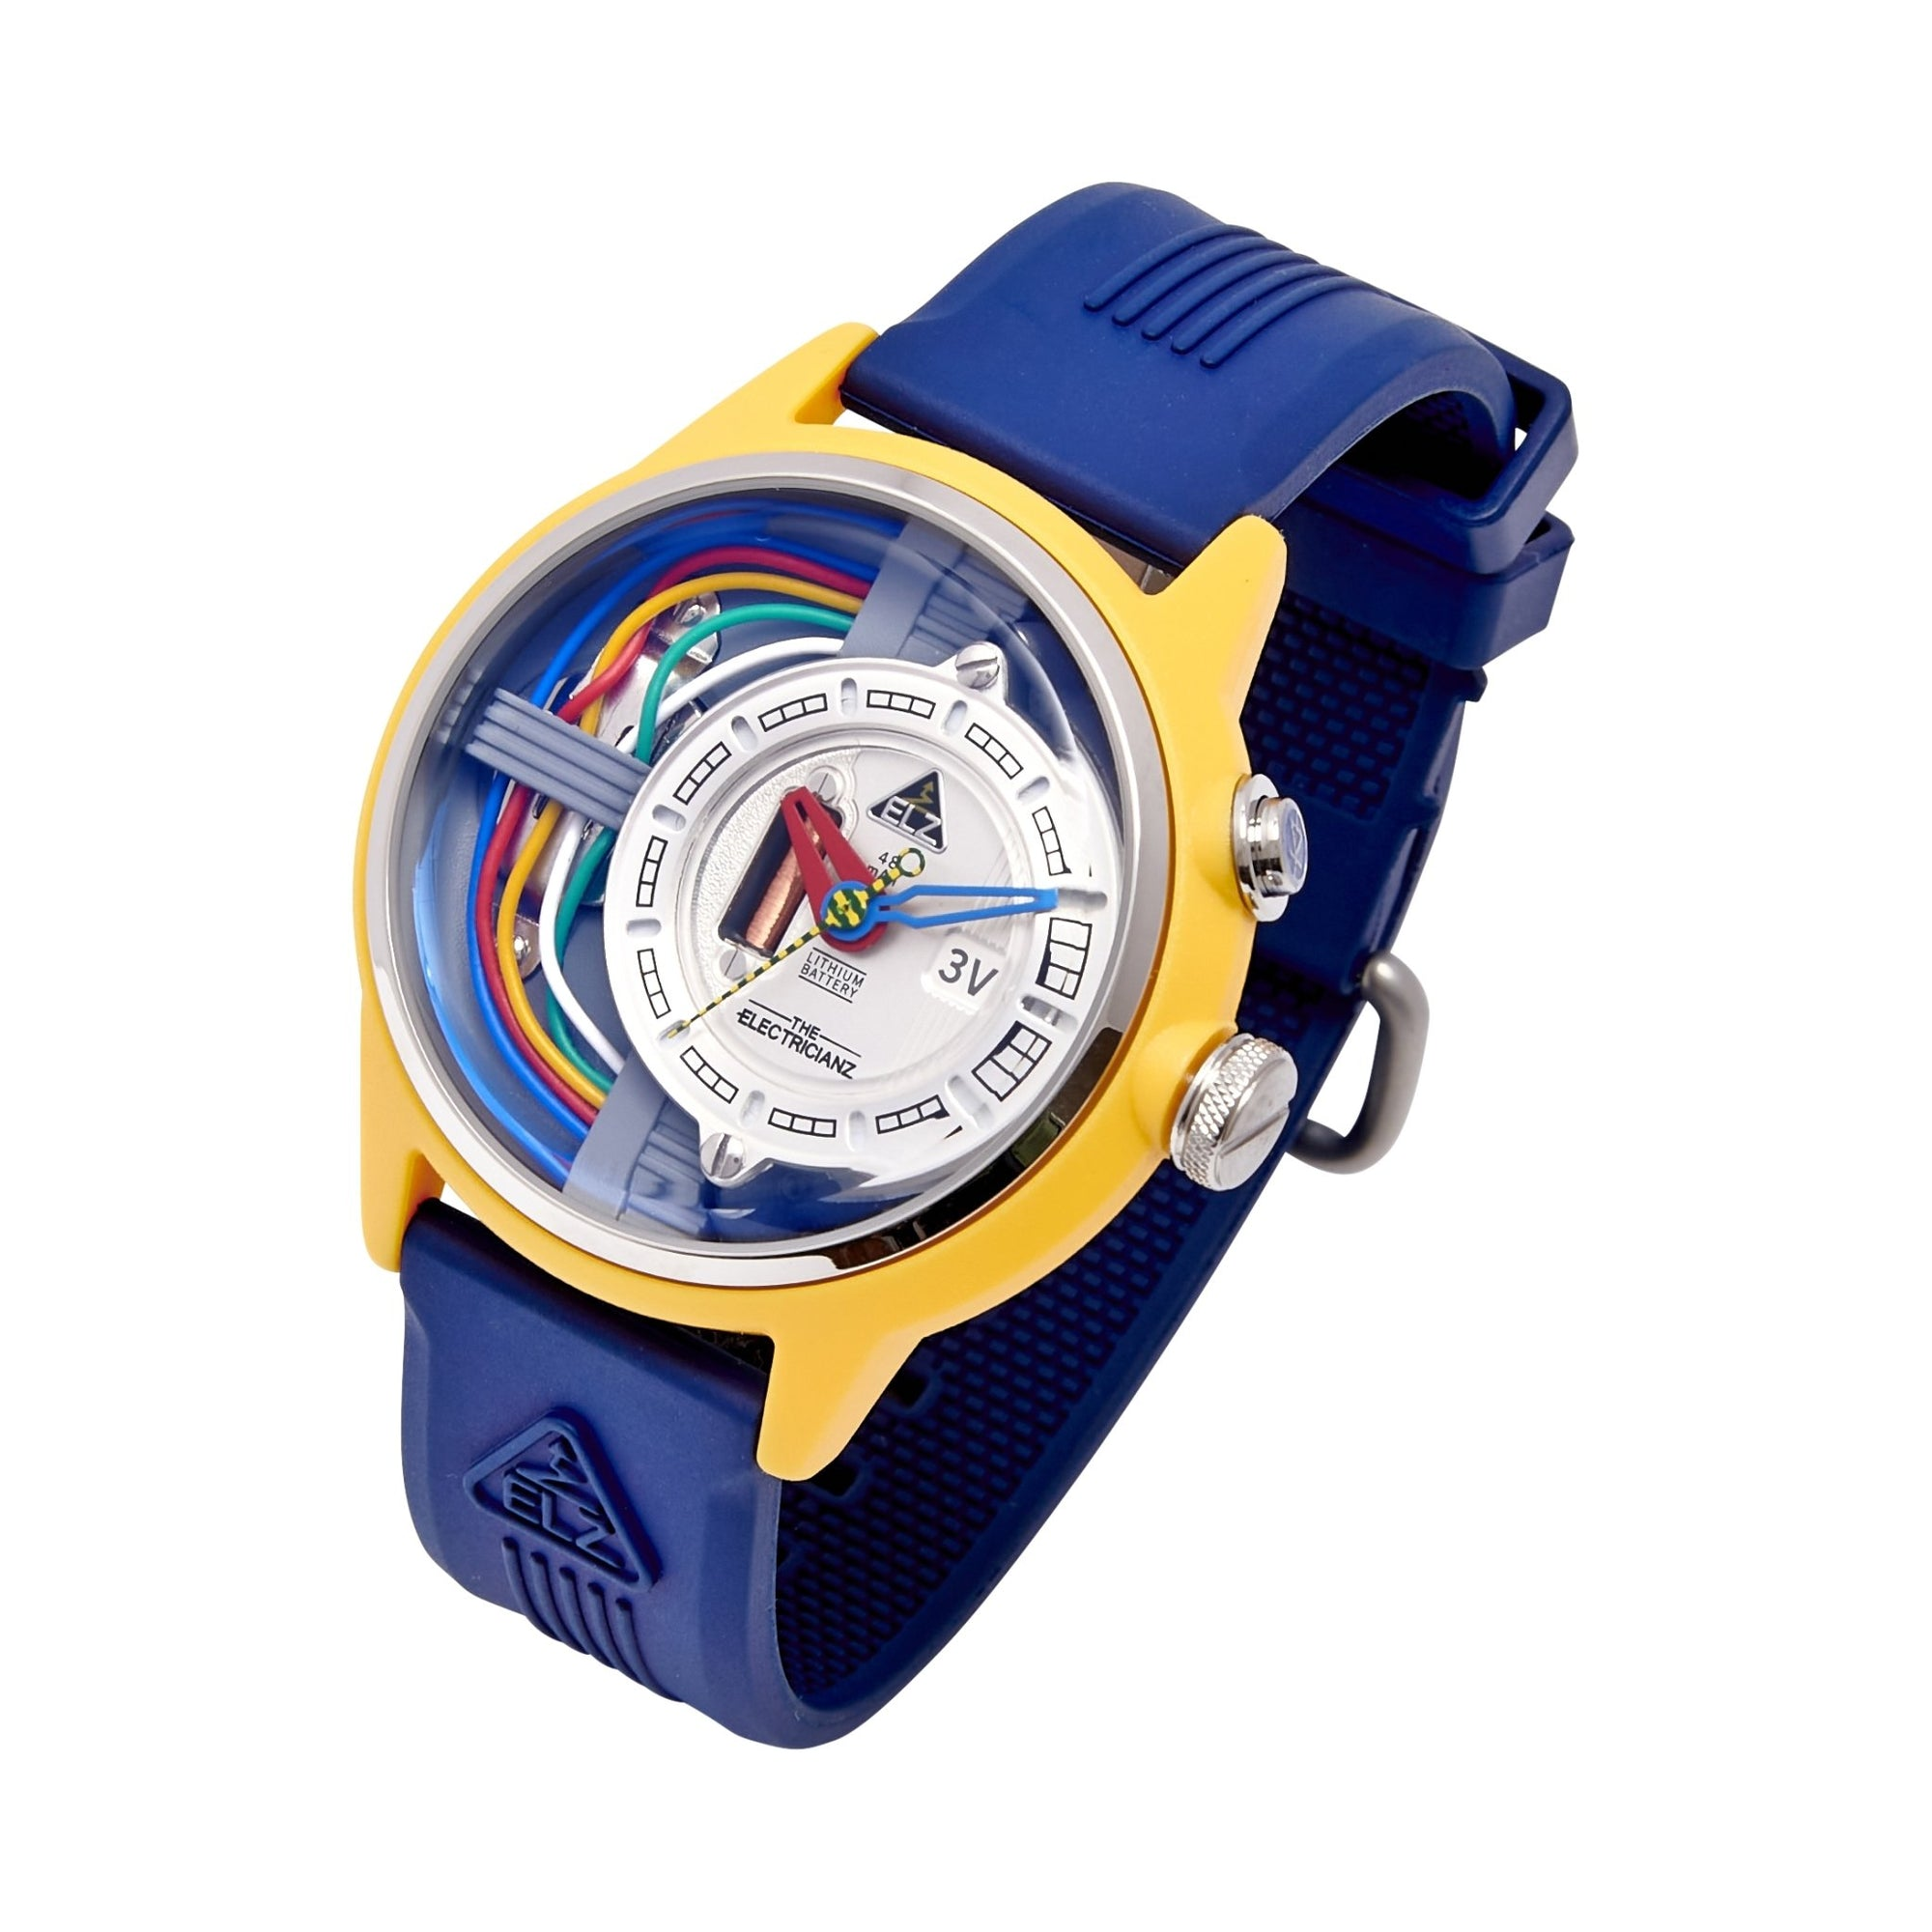 The Electricianz Nylon The Cable Z - Watches & Crystals